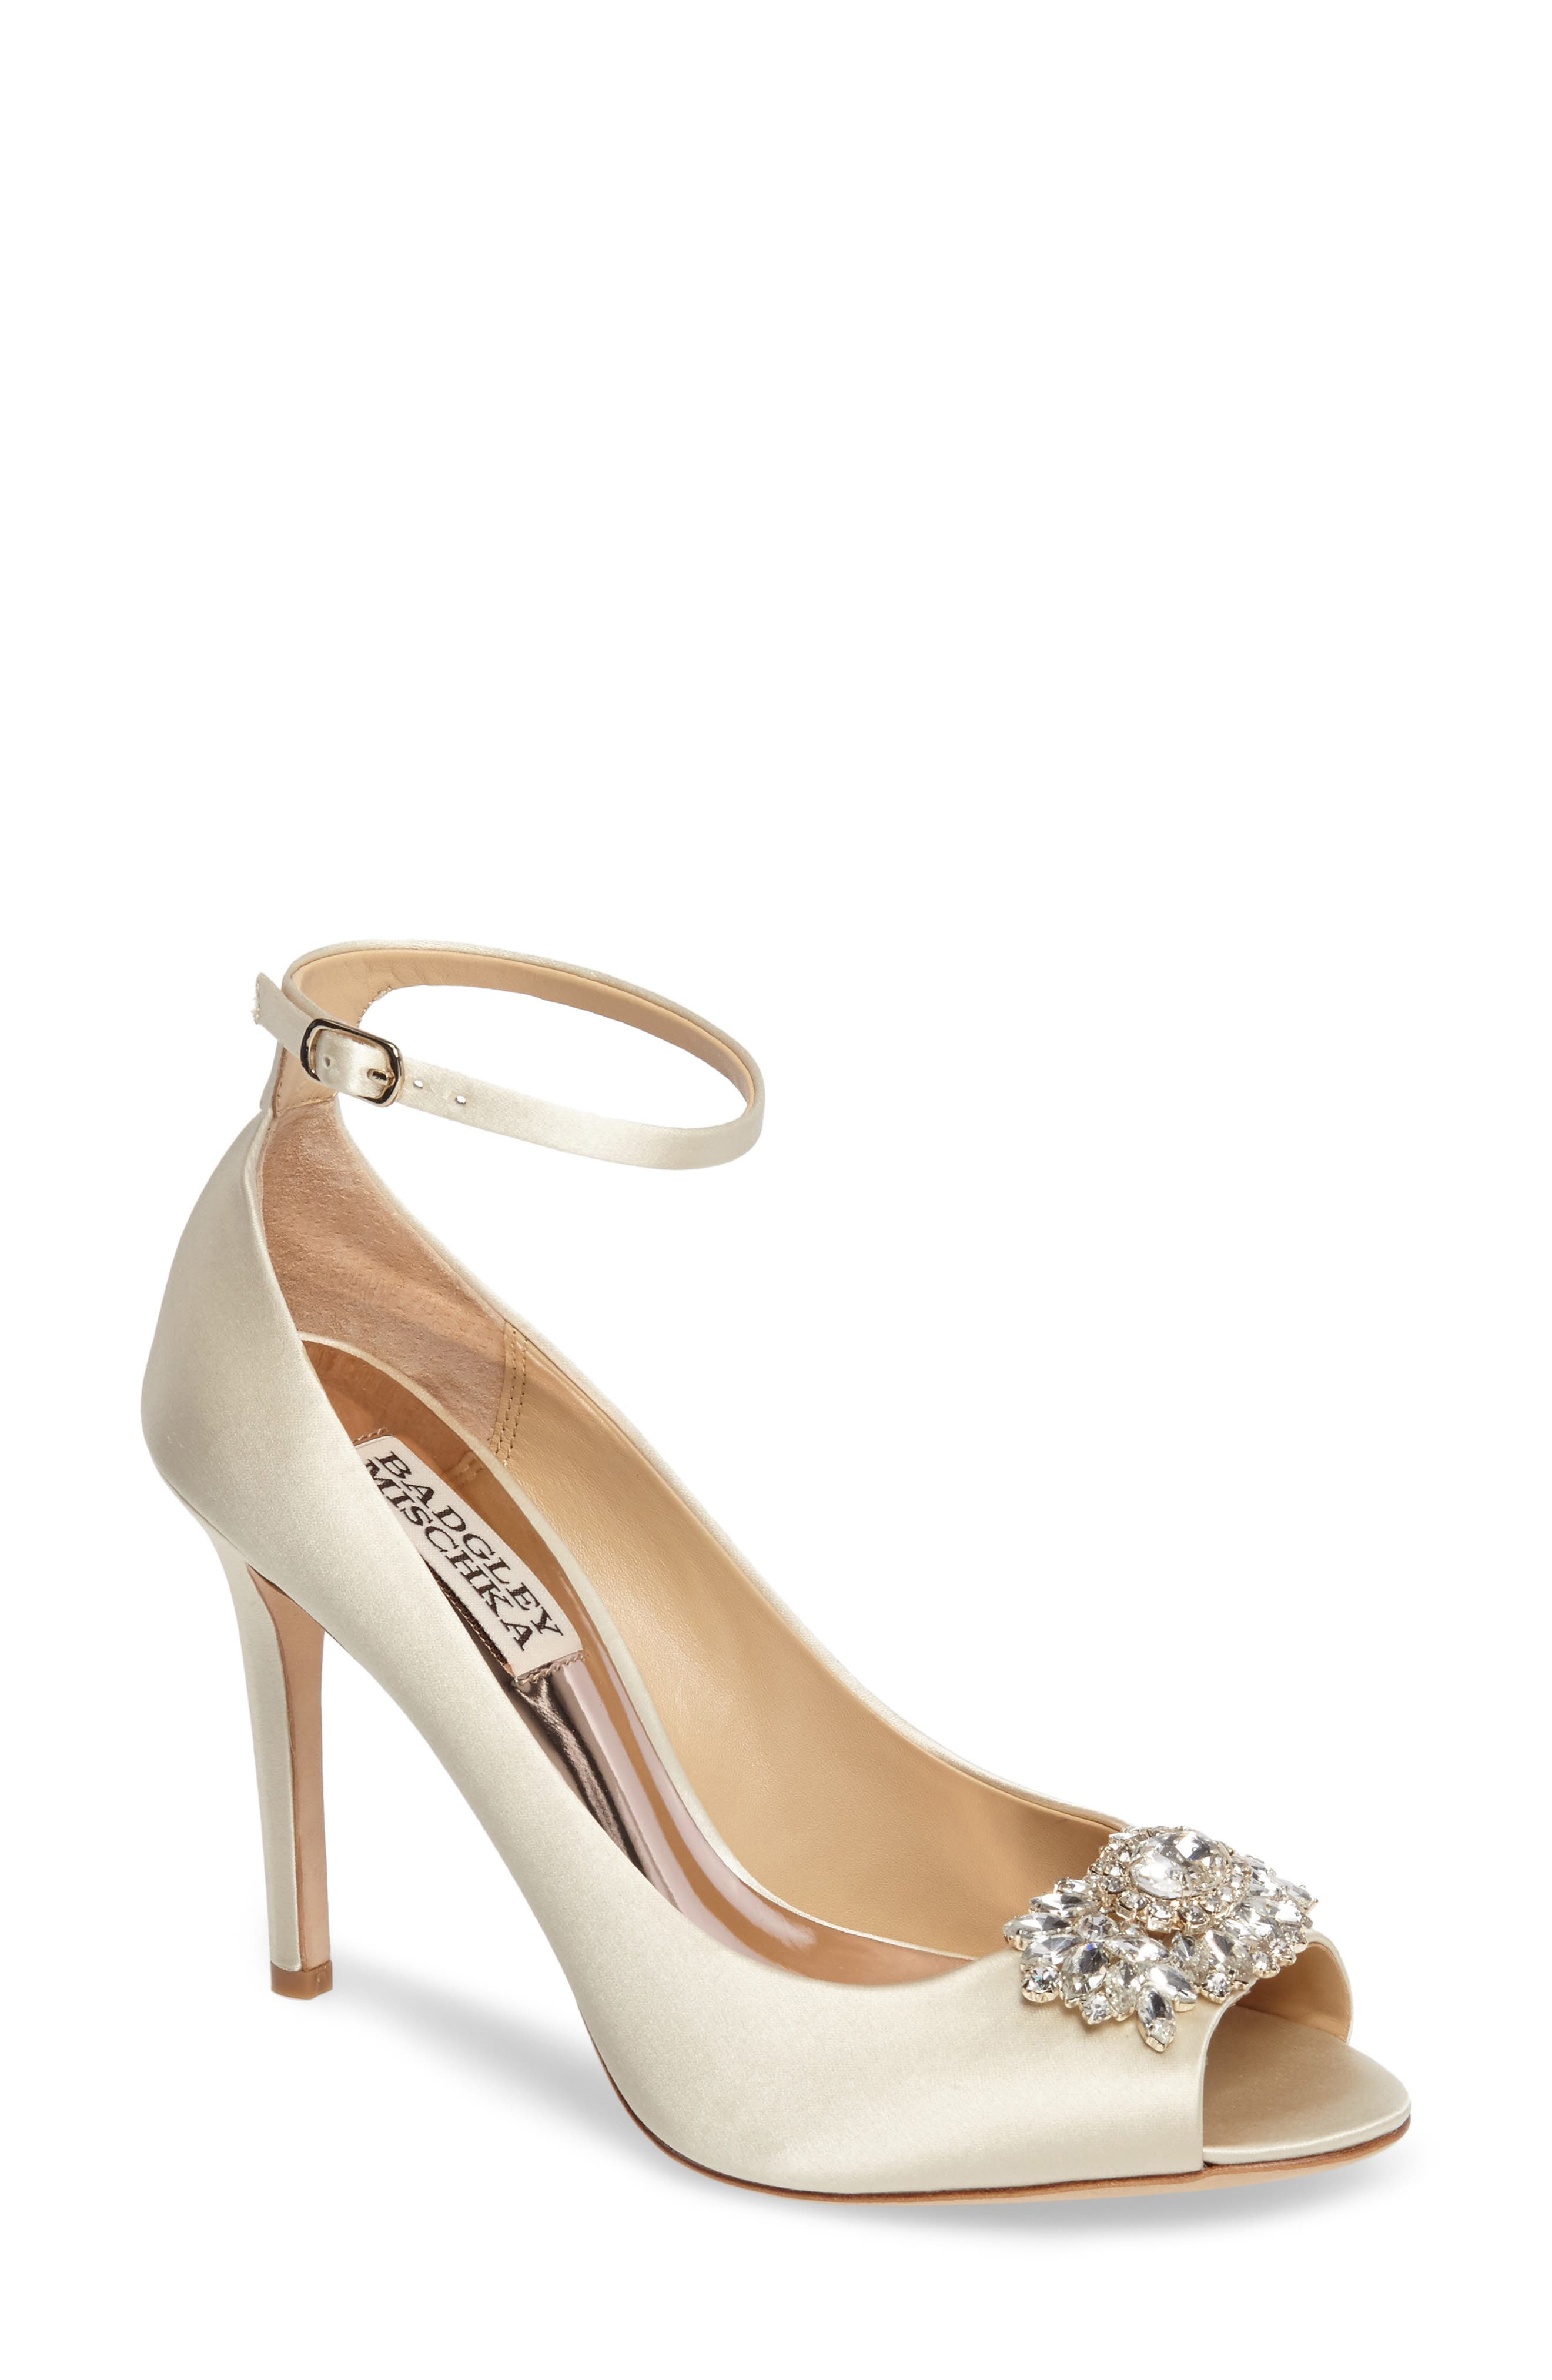 Main Image - Badgley Mischka Kali Ankle Strap Pump (Women)